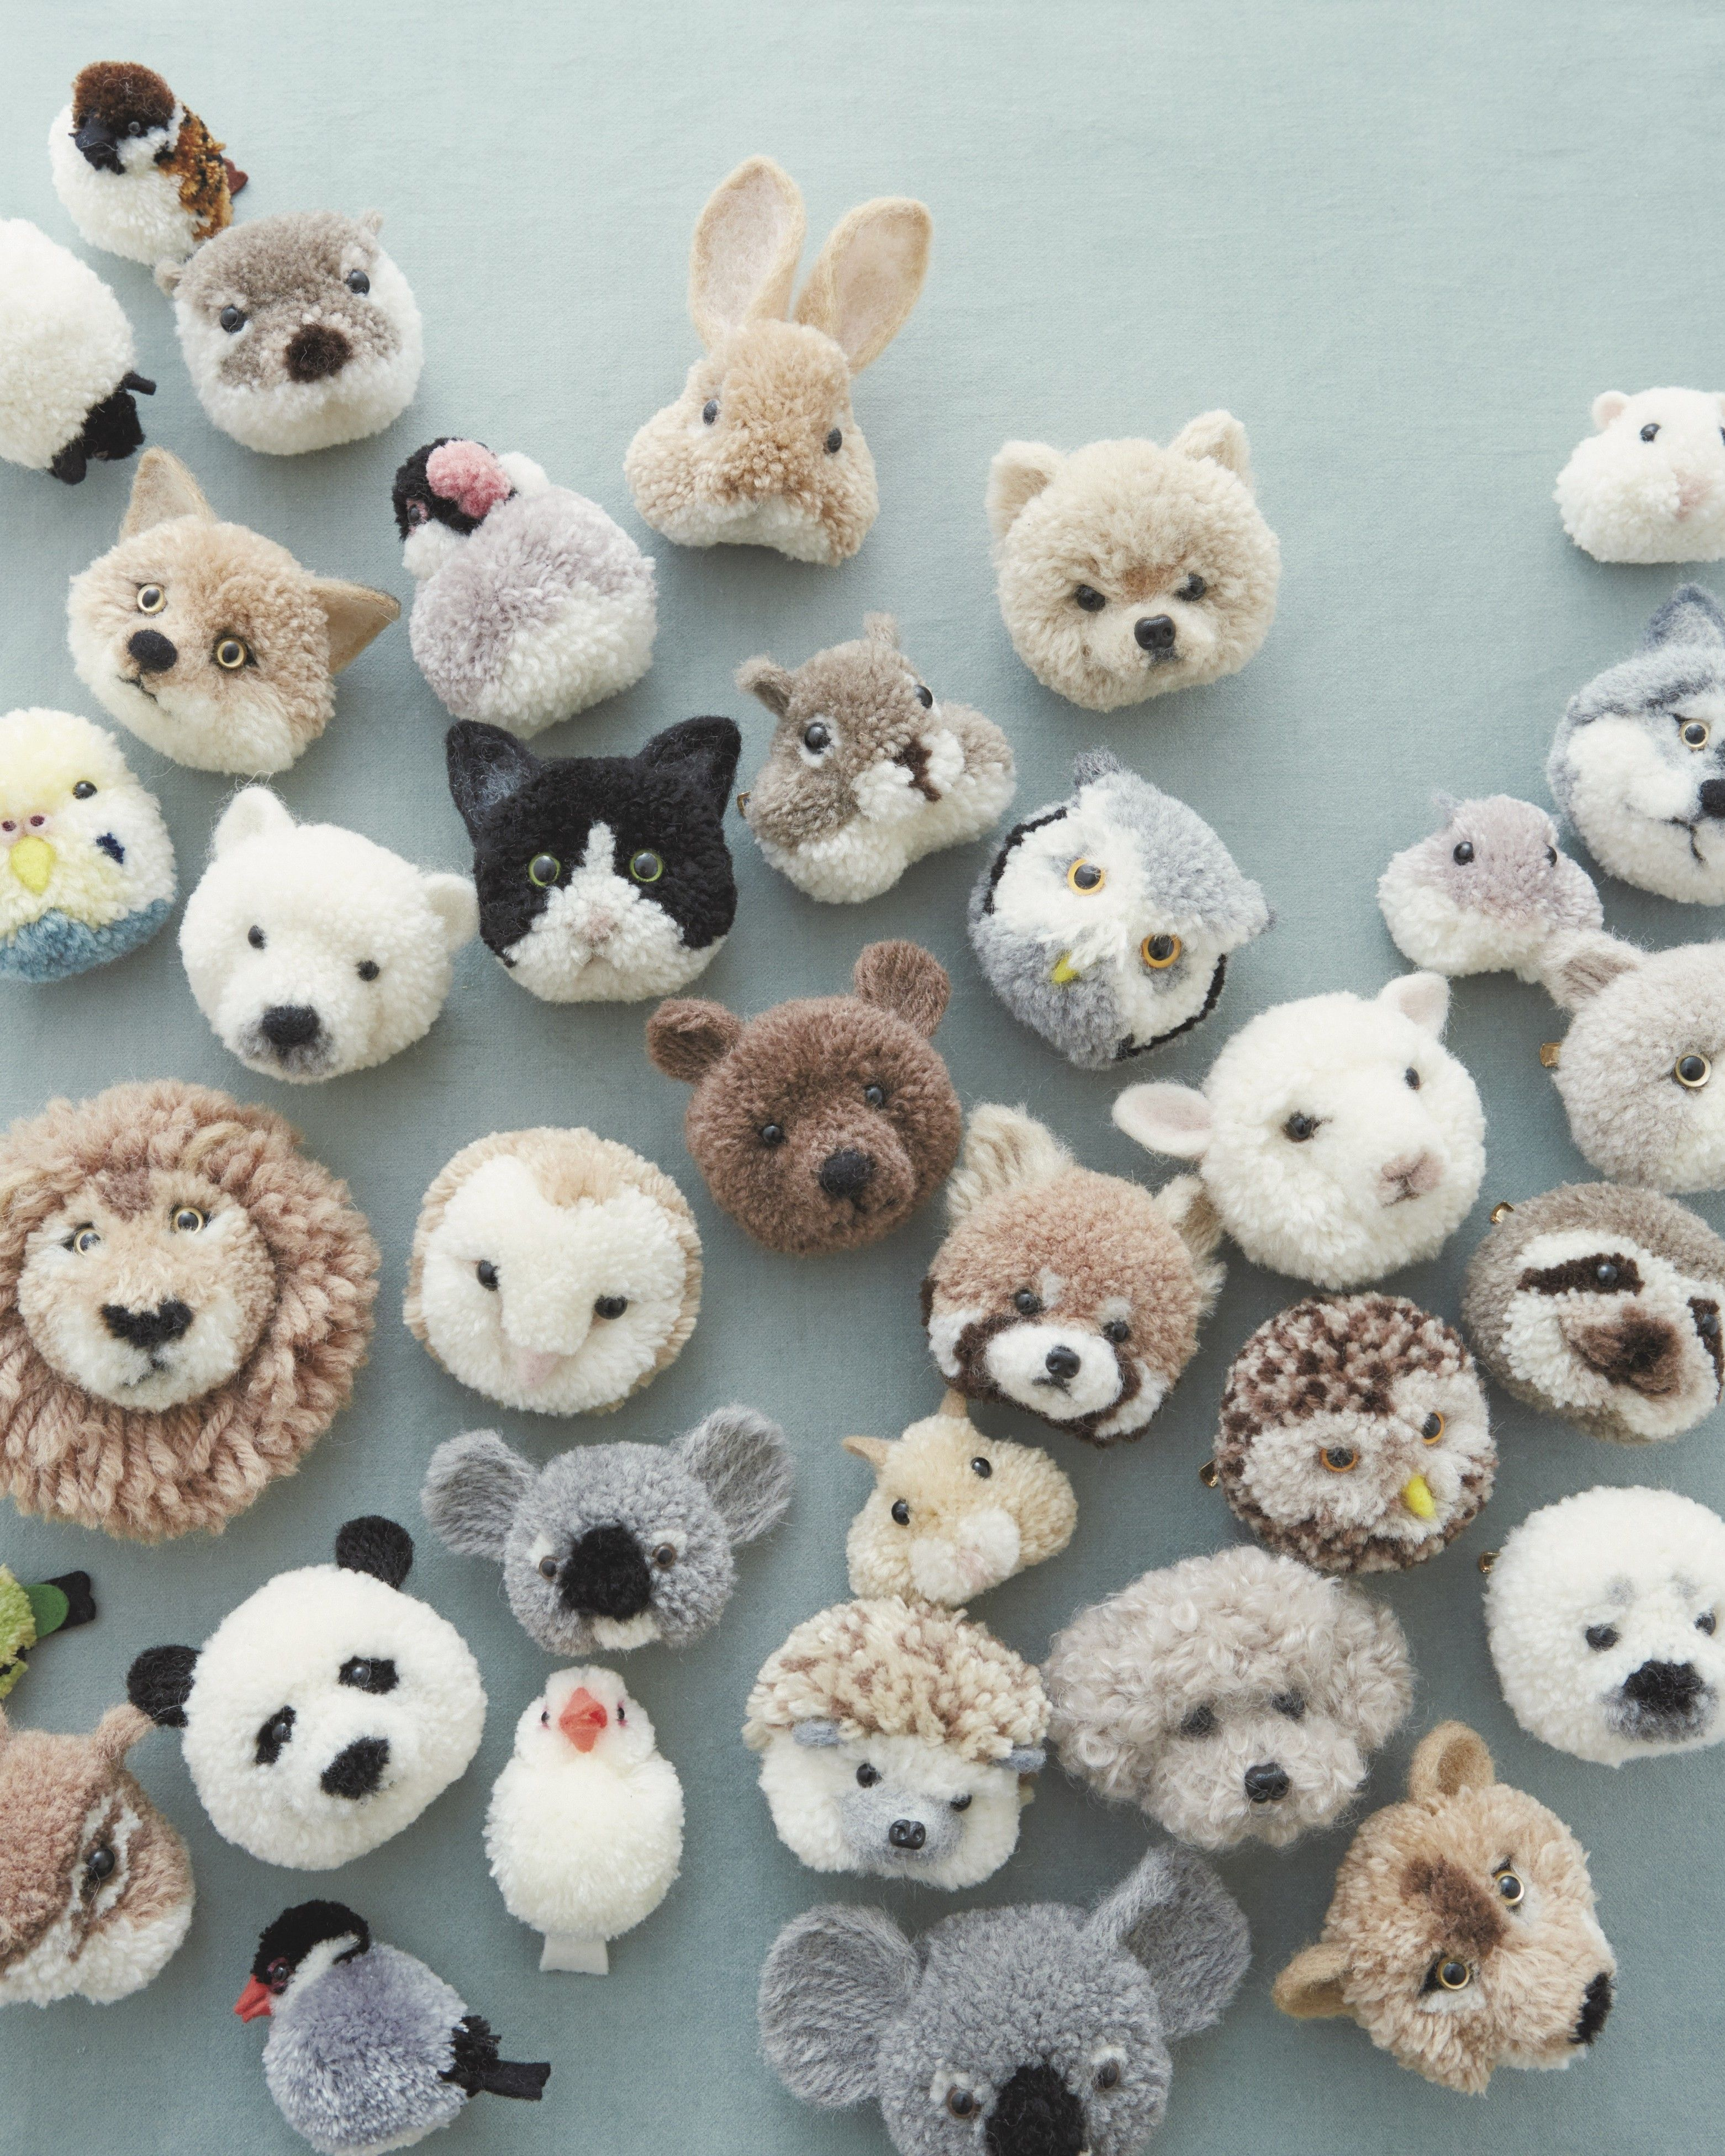 These Pom-Pom Animals Are Our New Craft Obsession for Fall #craft